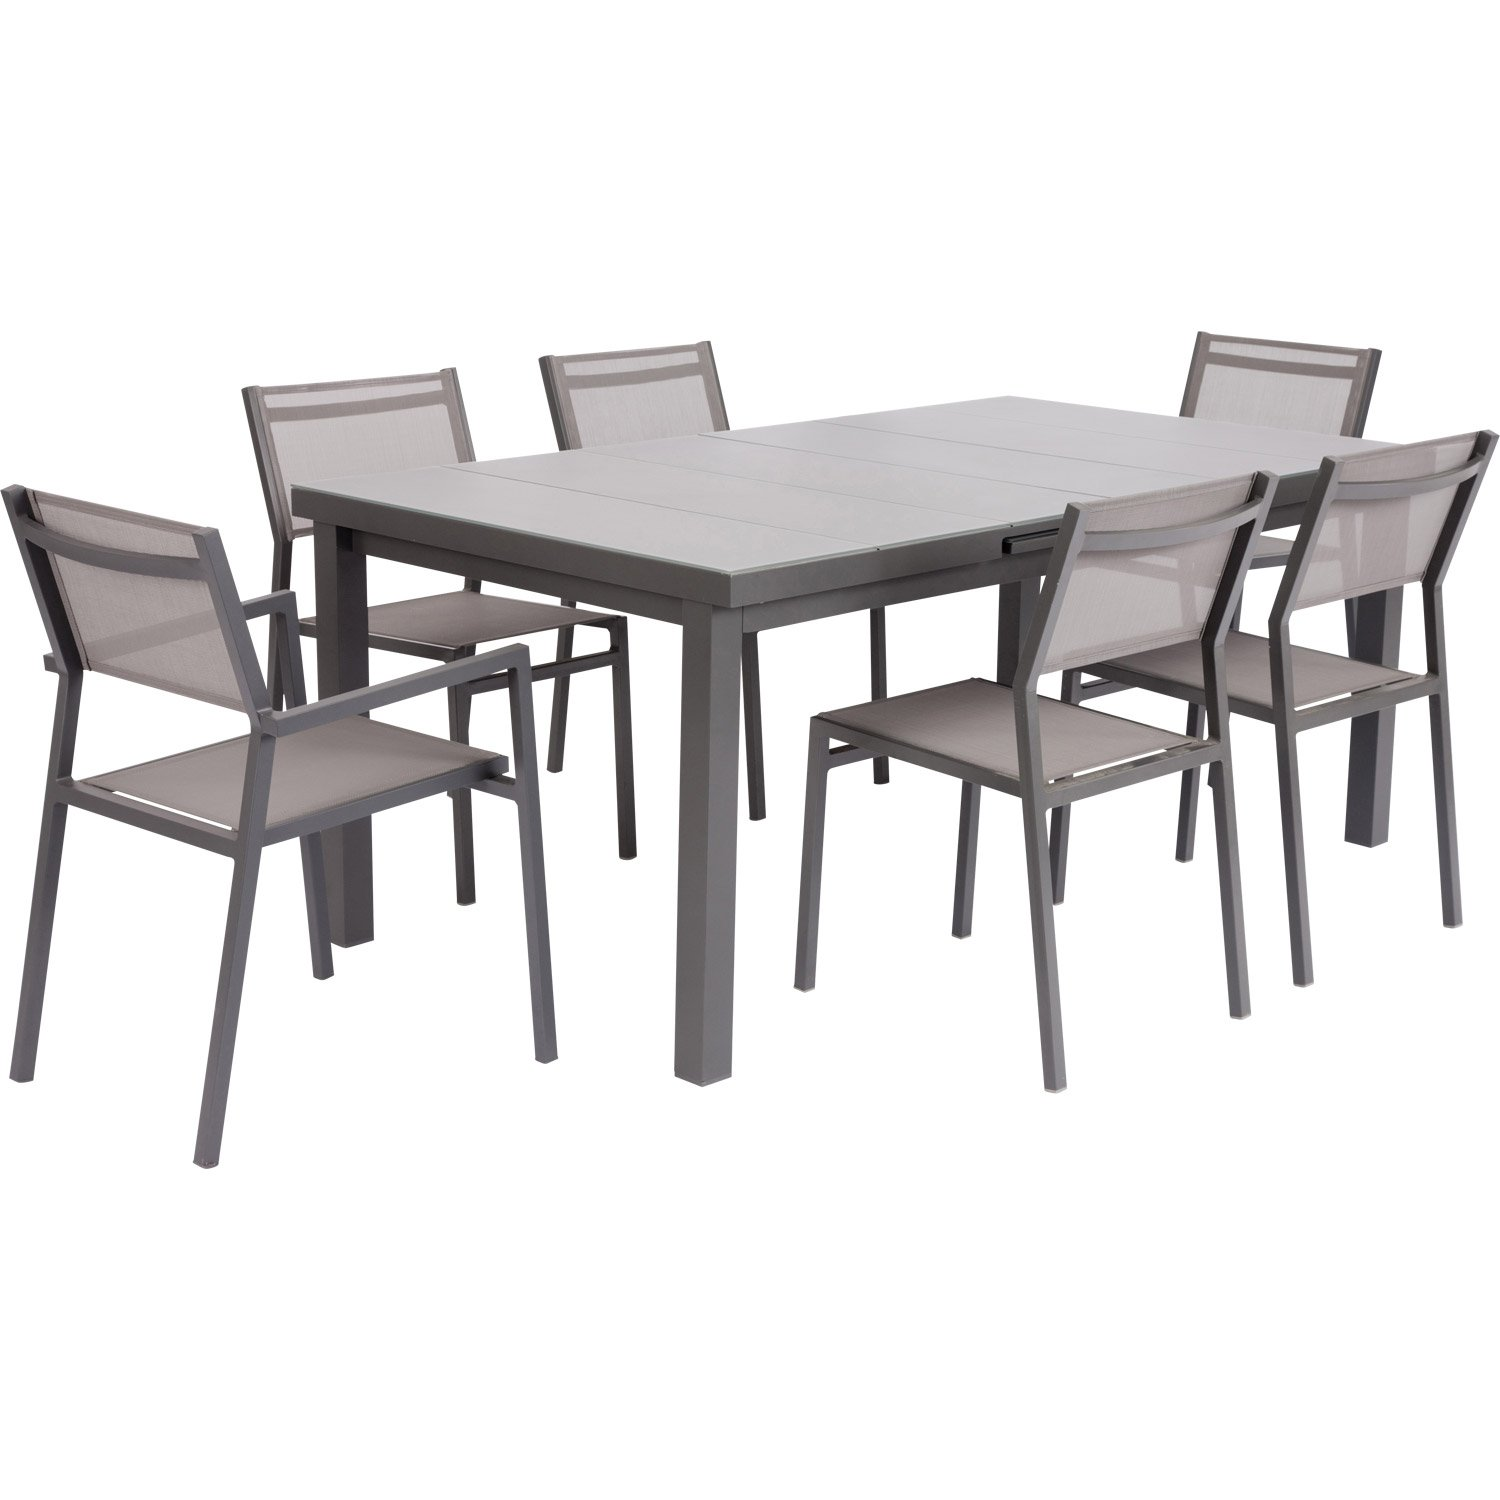 table de jardin leroy merlin